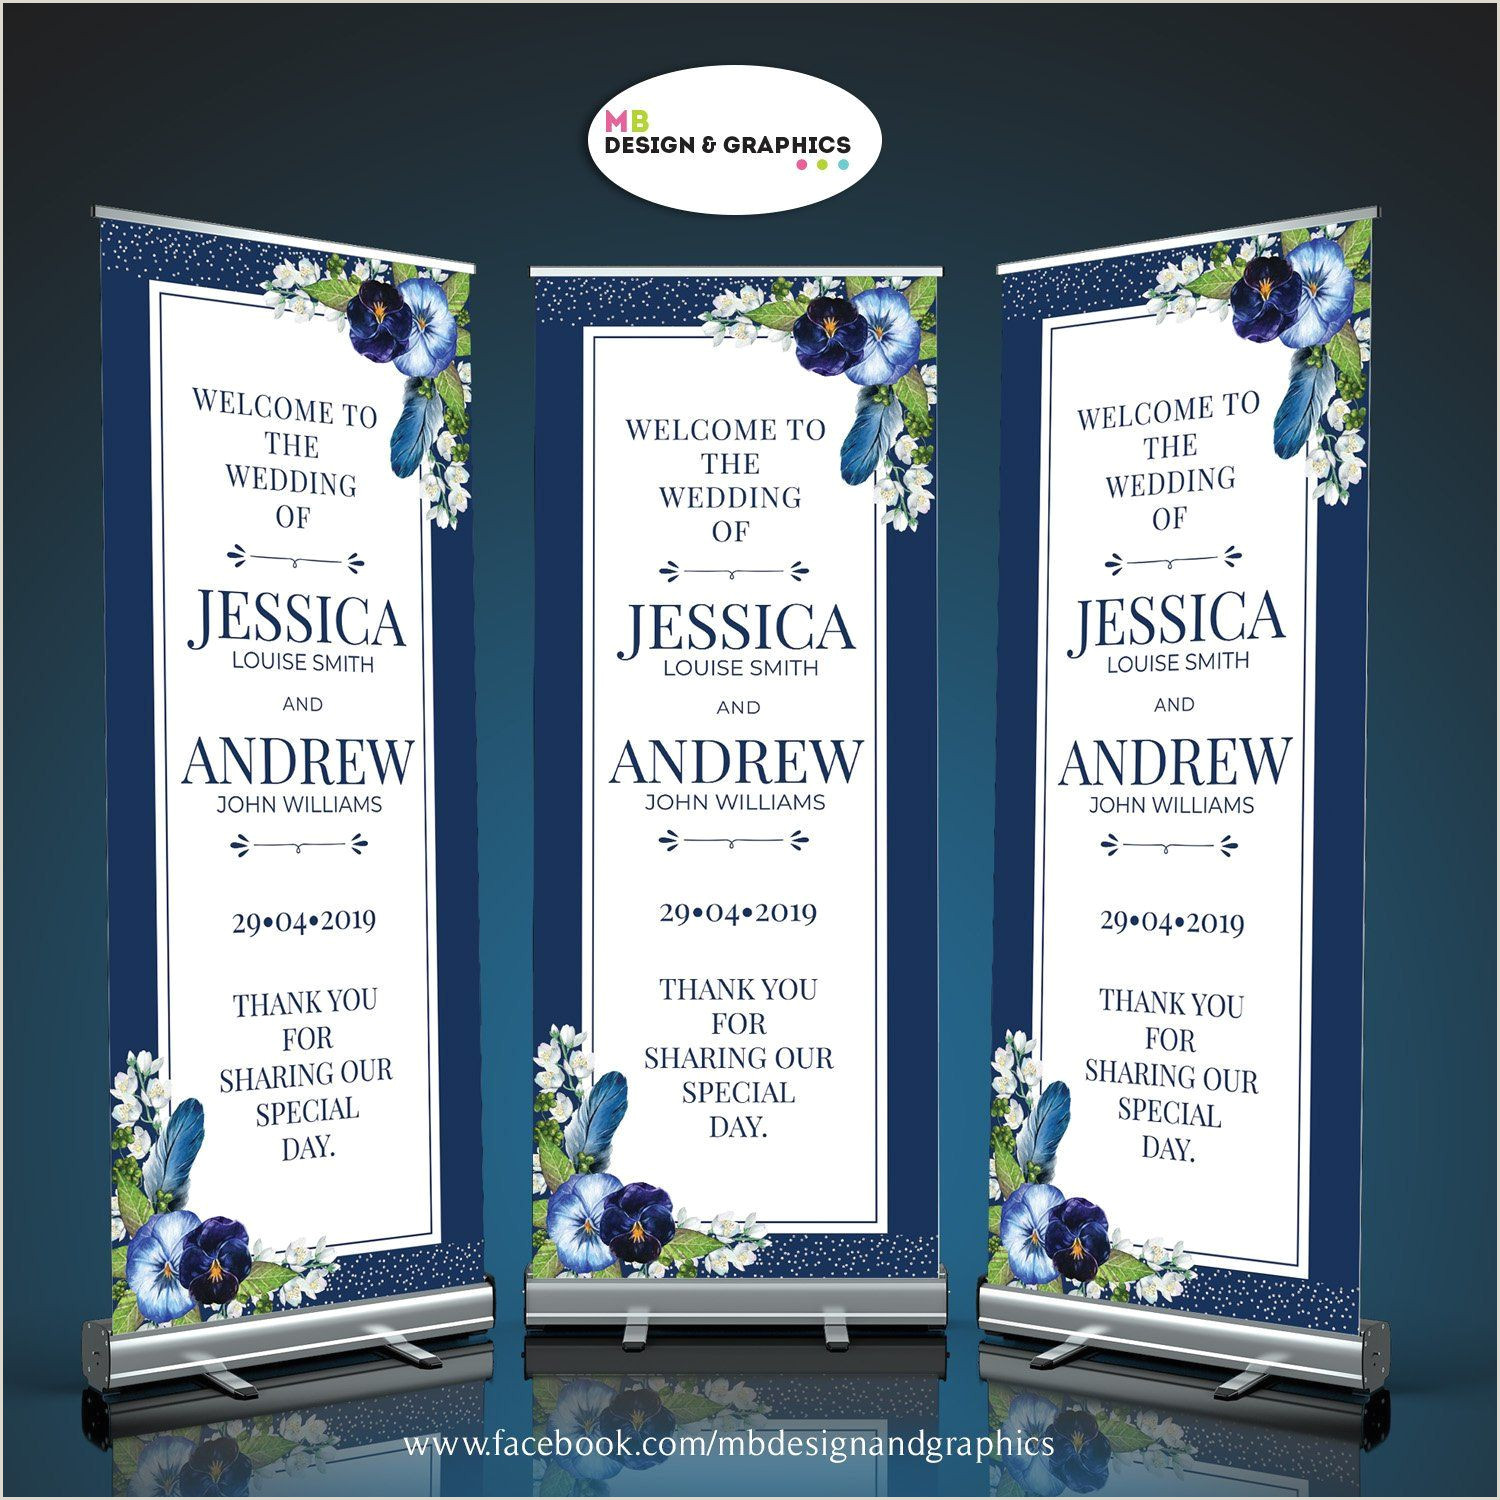 Pull Out Banners Wedding Roller Banners Roller Banners Pull Up Banner